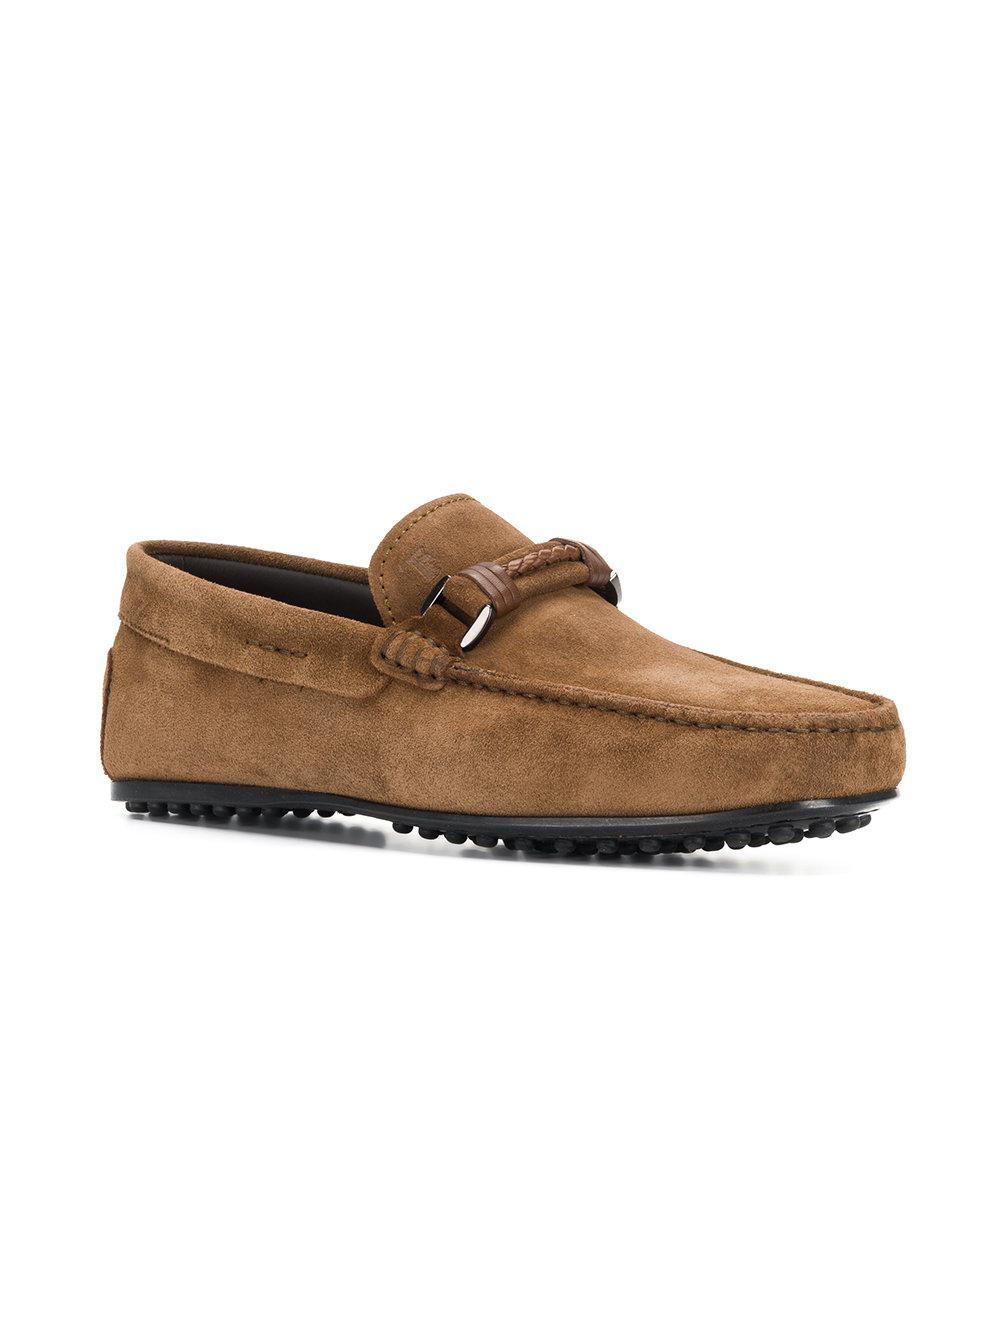 Tod's Leather Buckle-detailed Loafers in Brown for Men